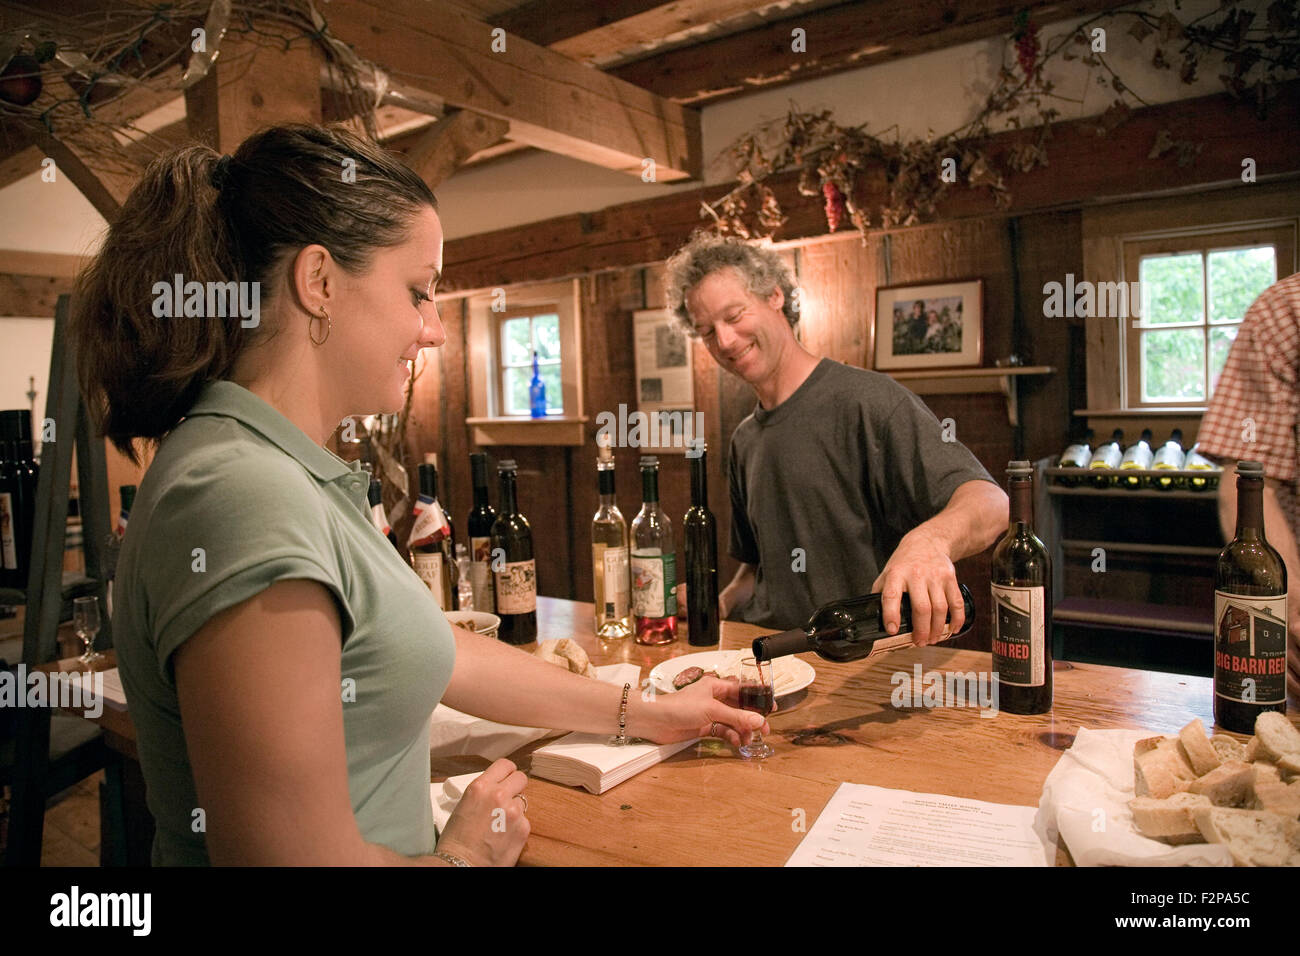 Wine tasting at Boyden Valley Winery, Lamoille River Valley near Stowe, Vermont, USA Stock Photo